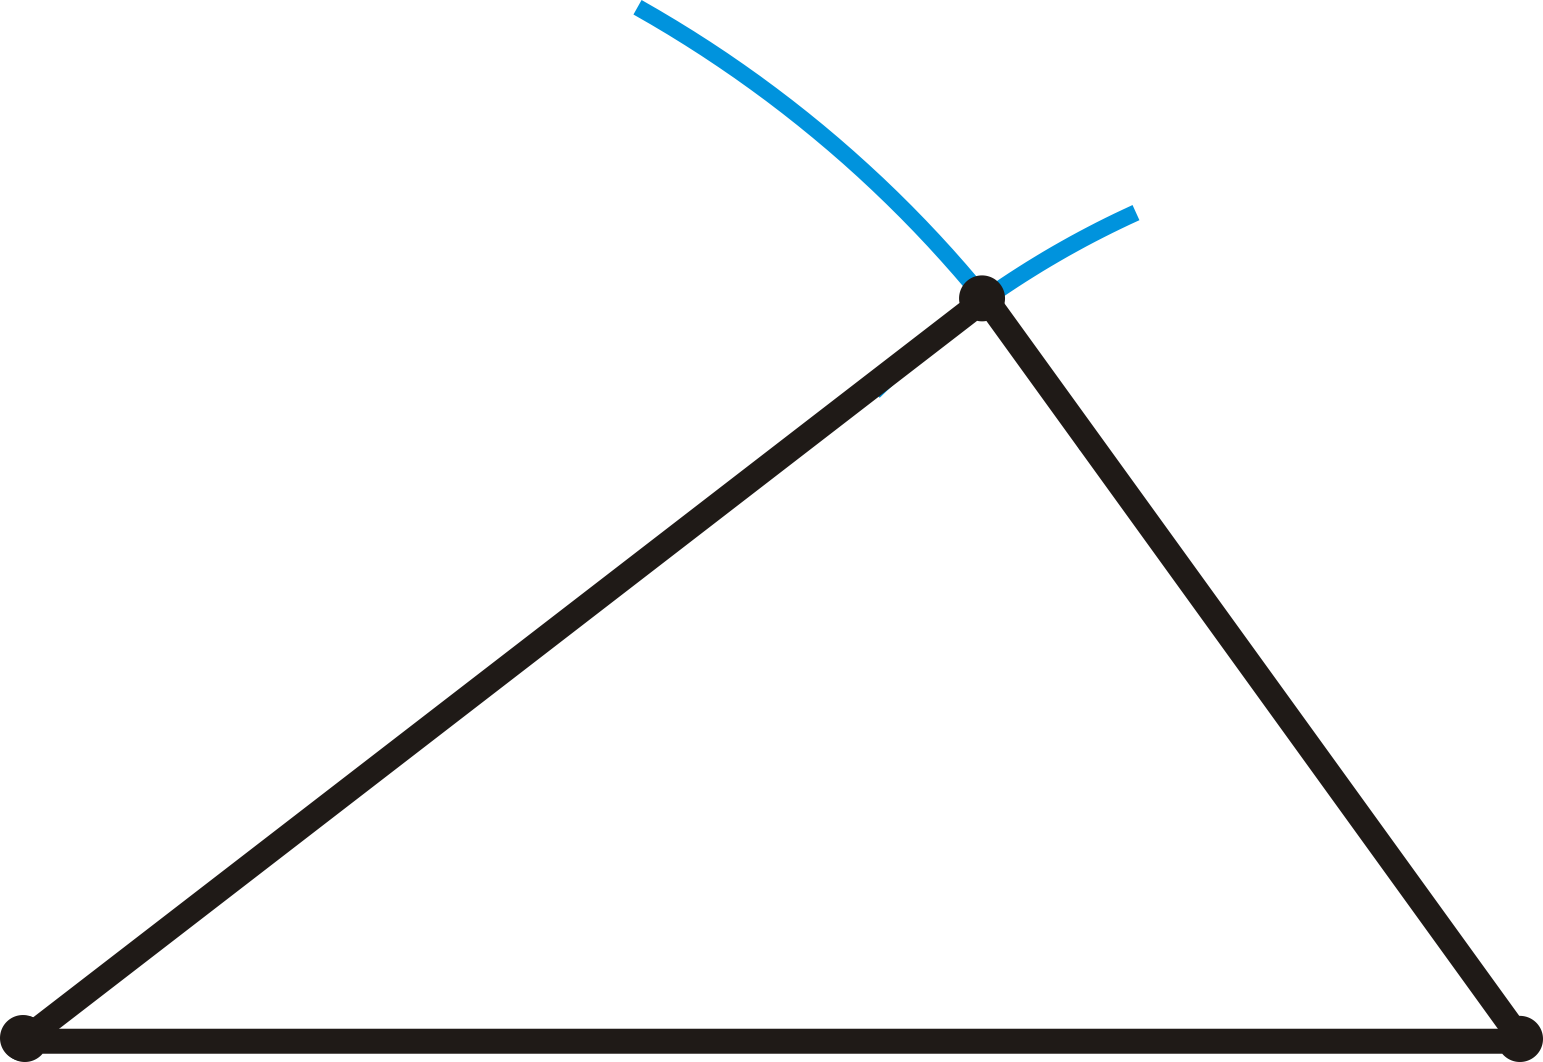 Drawing Lines With Triangle Combination : License cc by nc